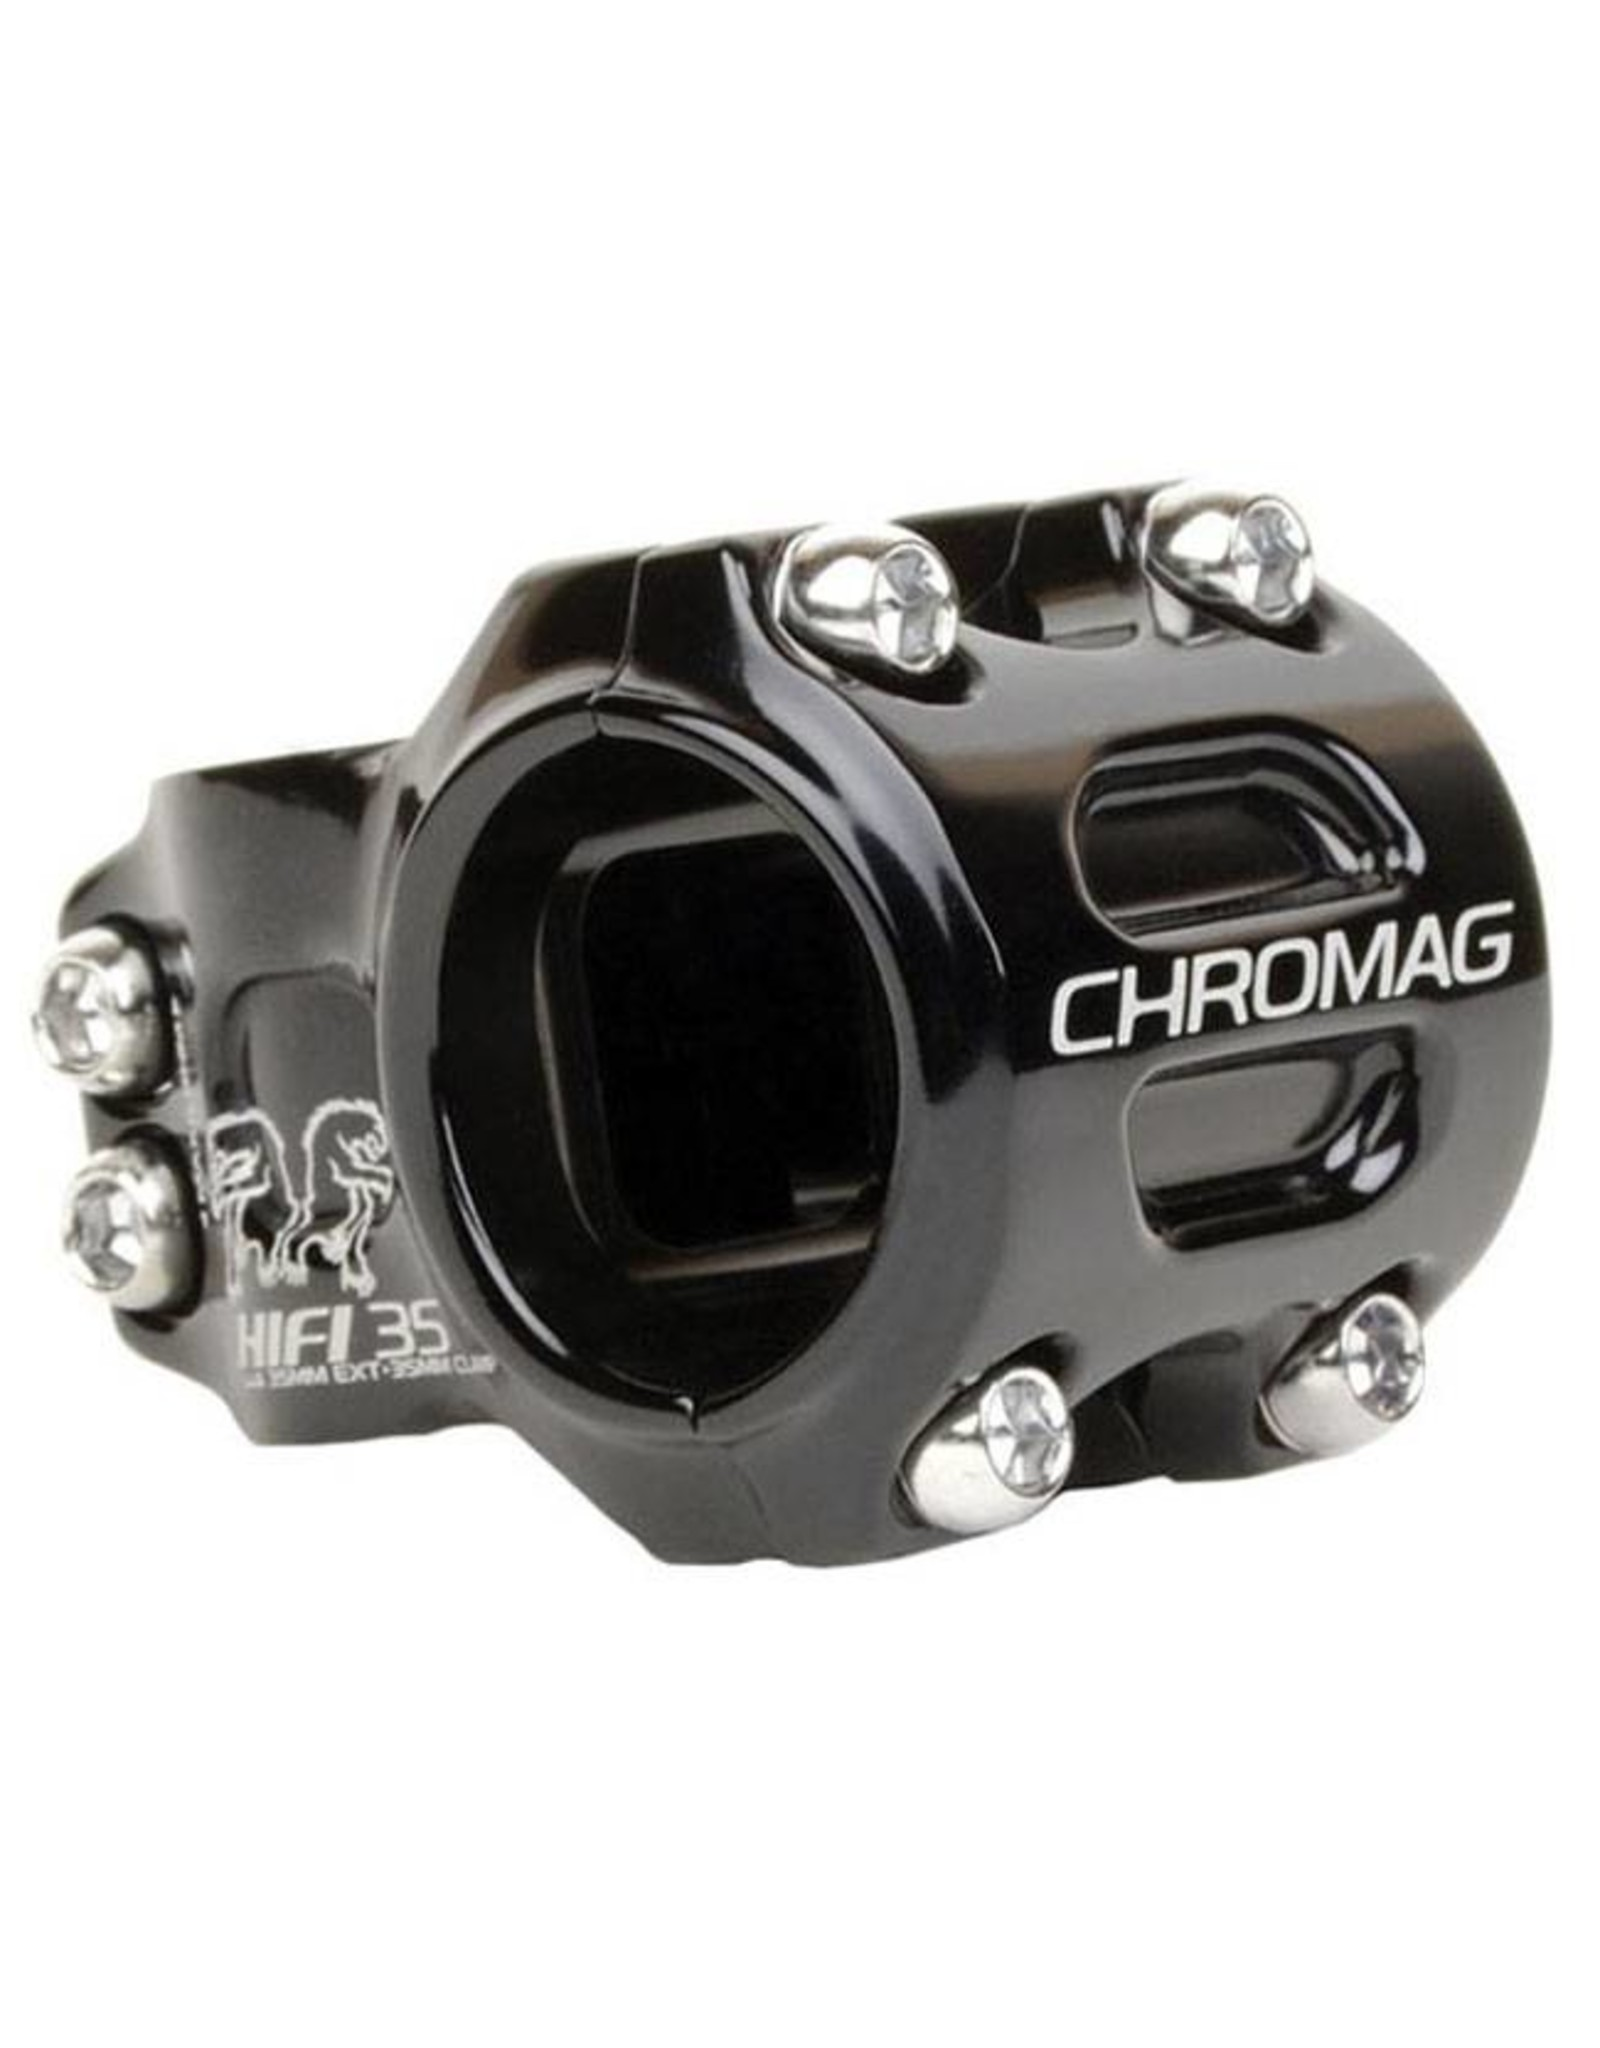 "Chromag HiFi Version 2 Stem: 50mm Extension, 35mm Clamp, 1-1/8"" Steerer, +/- 0 Degree Black"